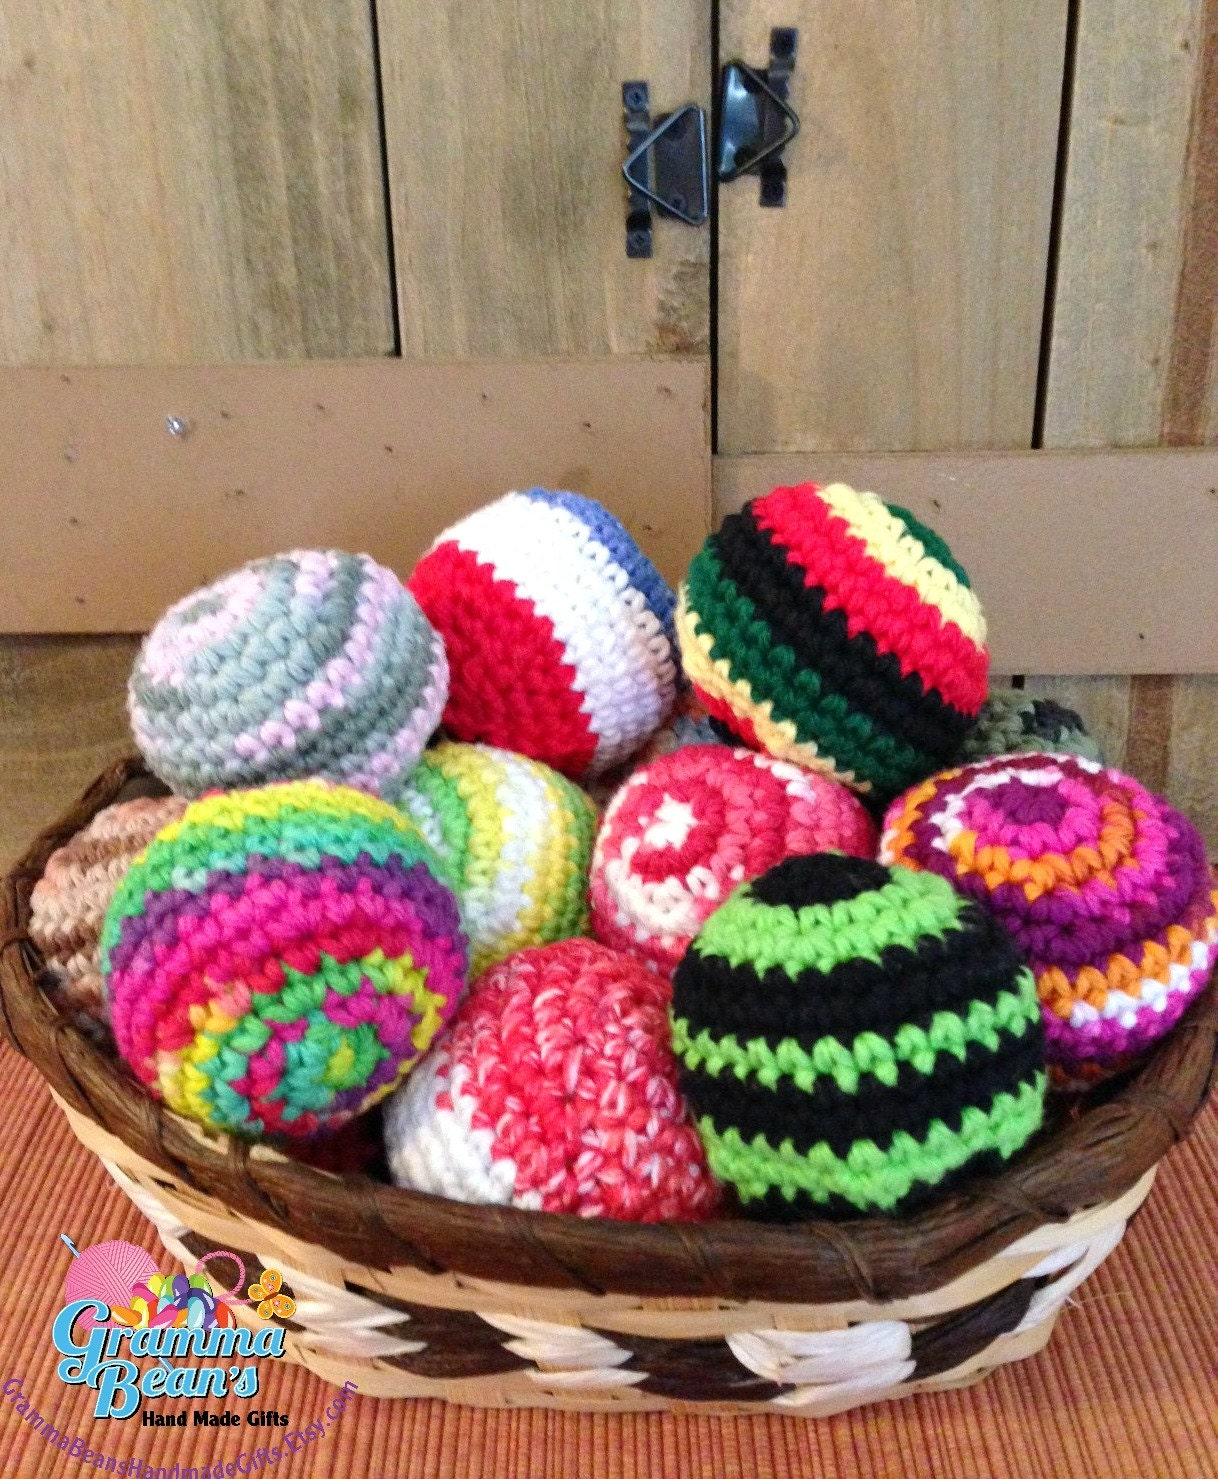 Crochet Beach Bag Pattern : Hacky Sack Bean Bag Foot Bag Pattern